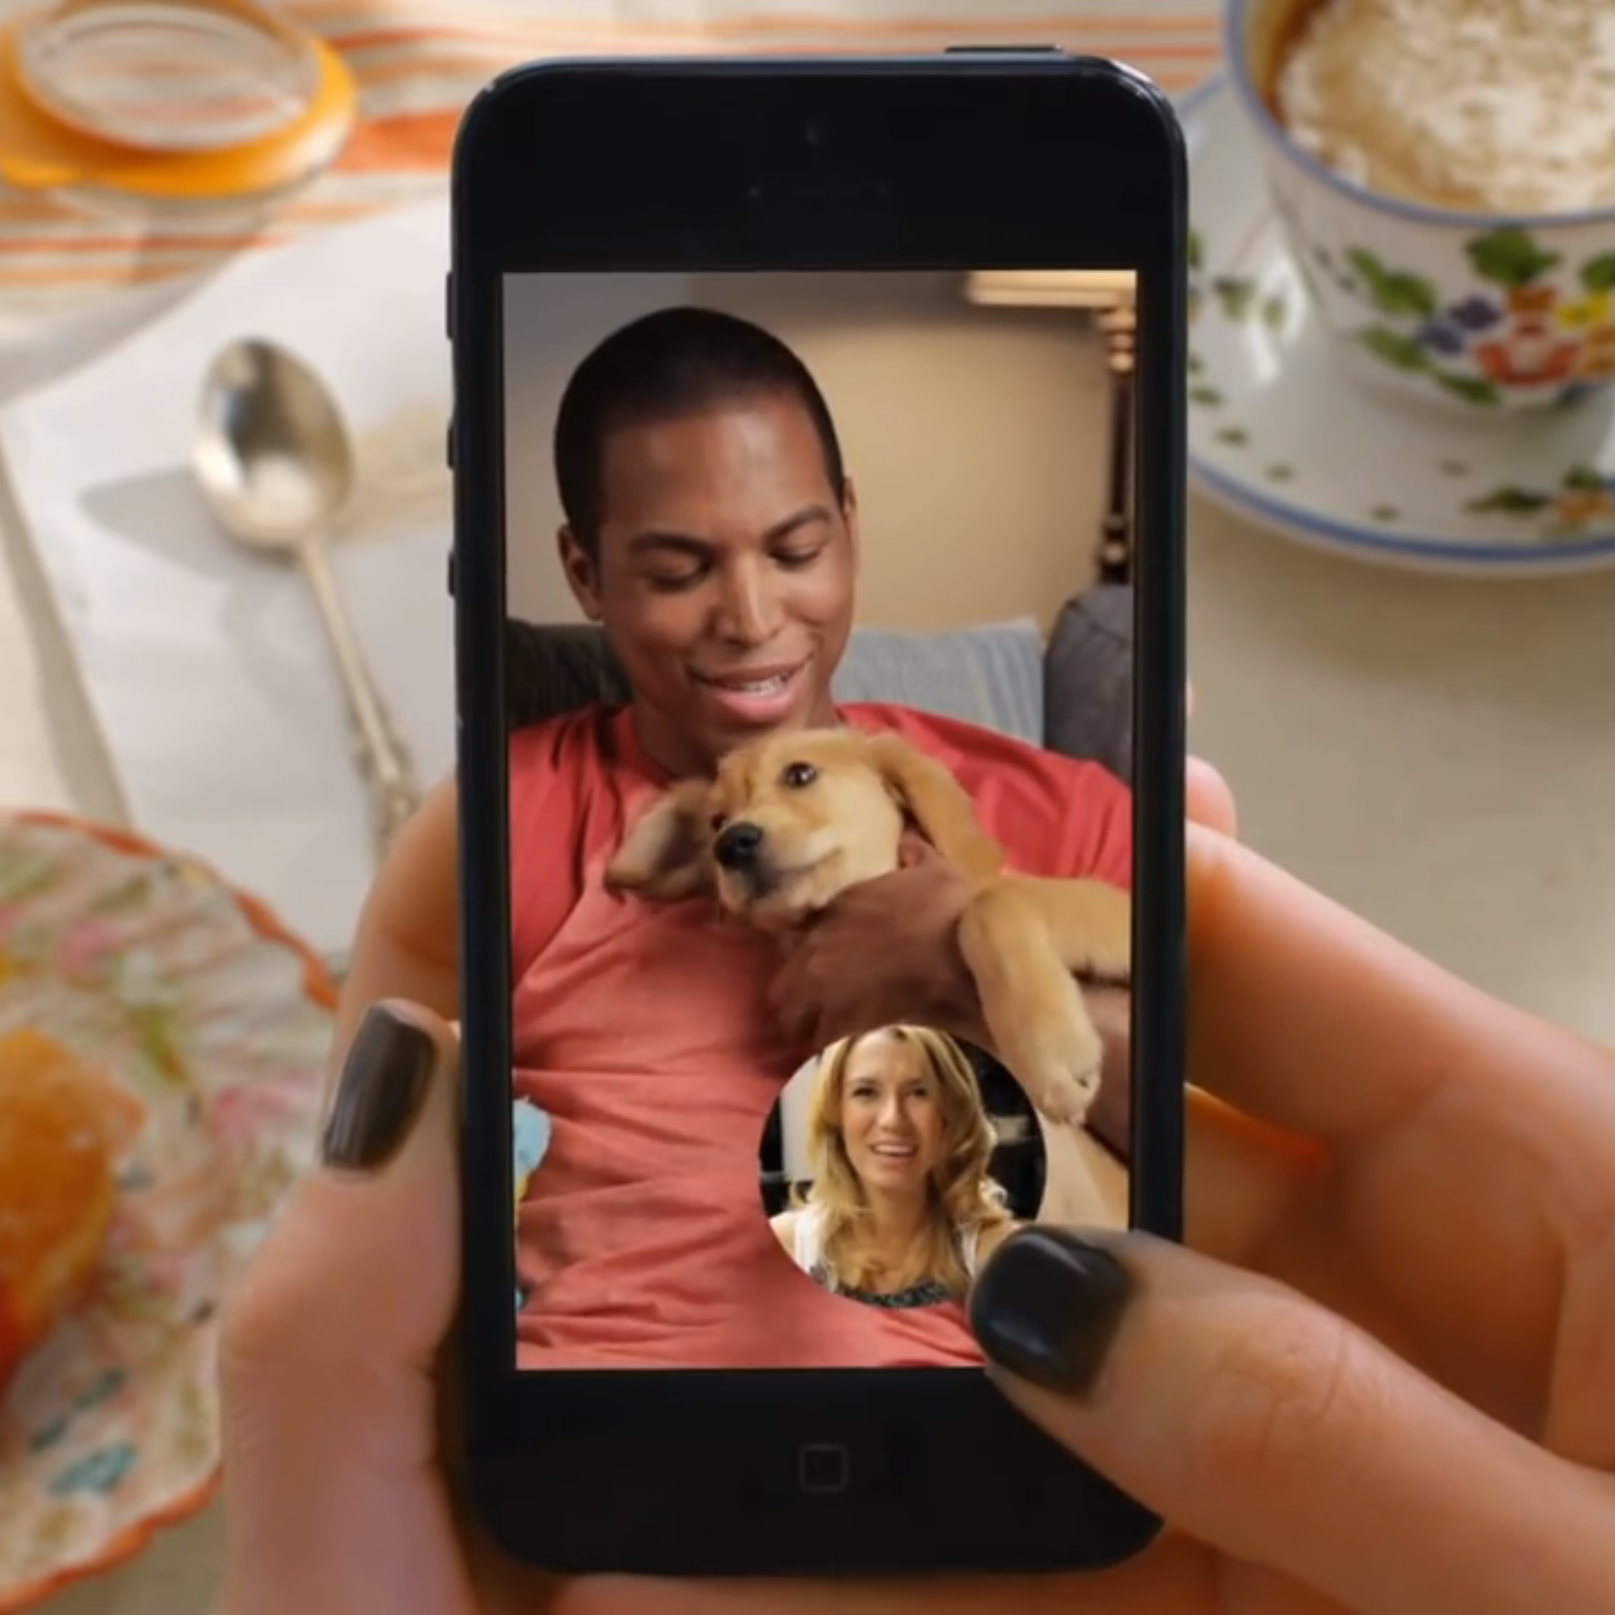 Snapchat      This commercial campaign for Snapchat was sent to all 400 million Snapchat mobile users. It had over a 2 million views online, was featured in the NYTimes, Time Magazine, WSJ, etc. -- and in 24 hours became Snapchat's most viewed ad ever in that time span.